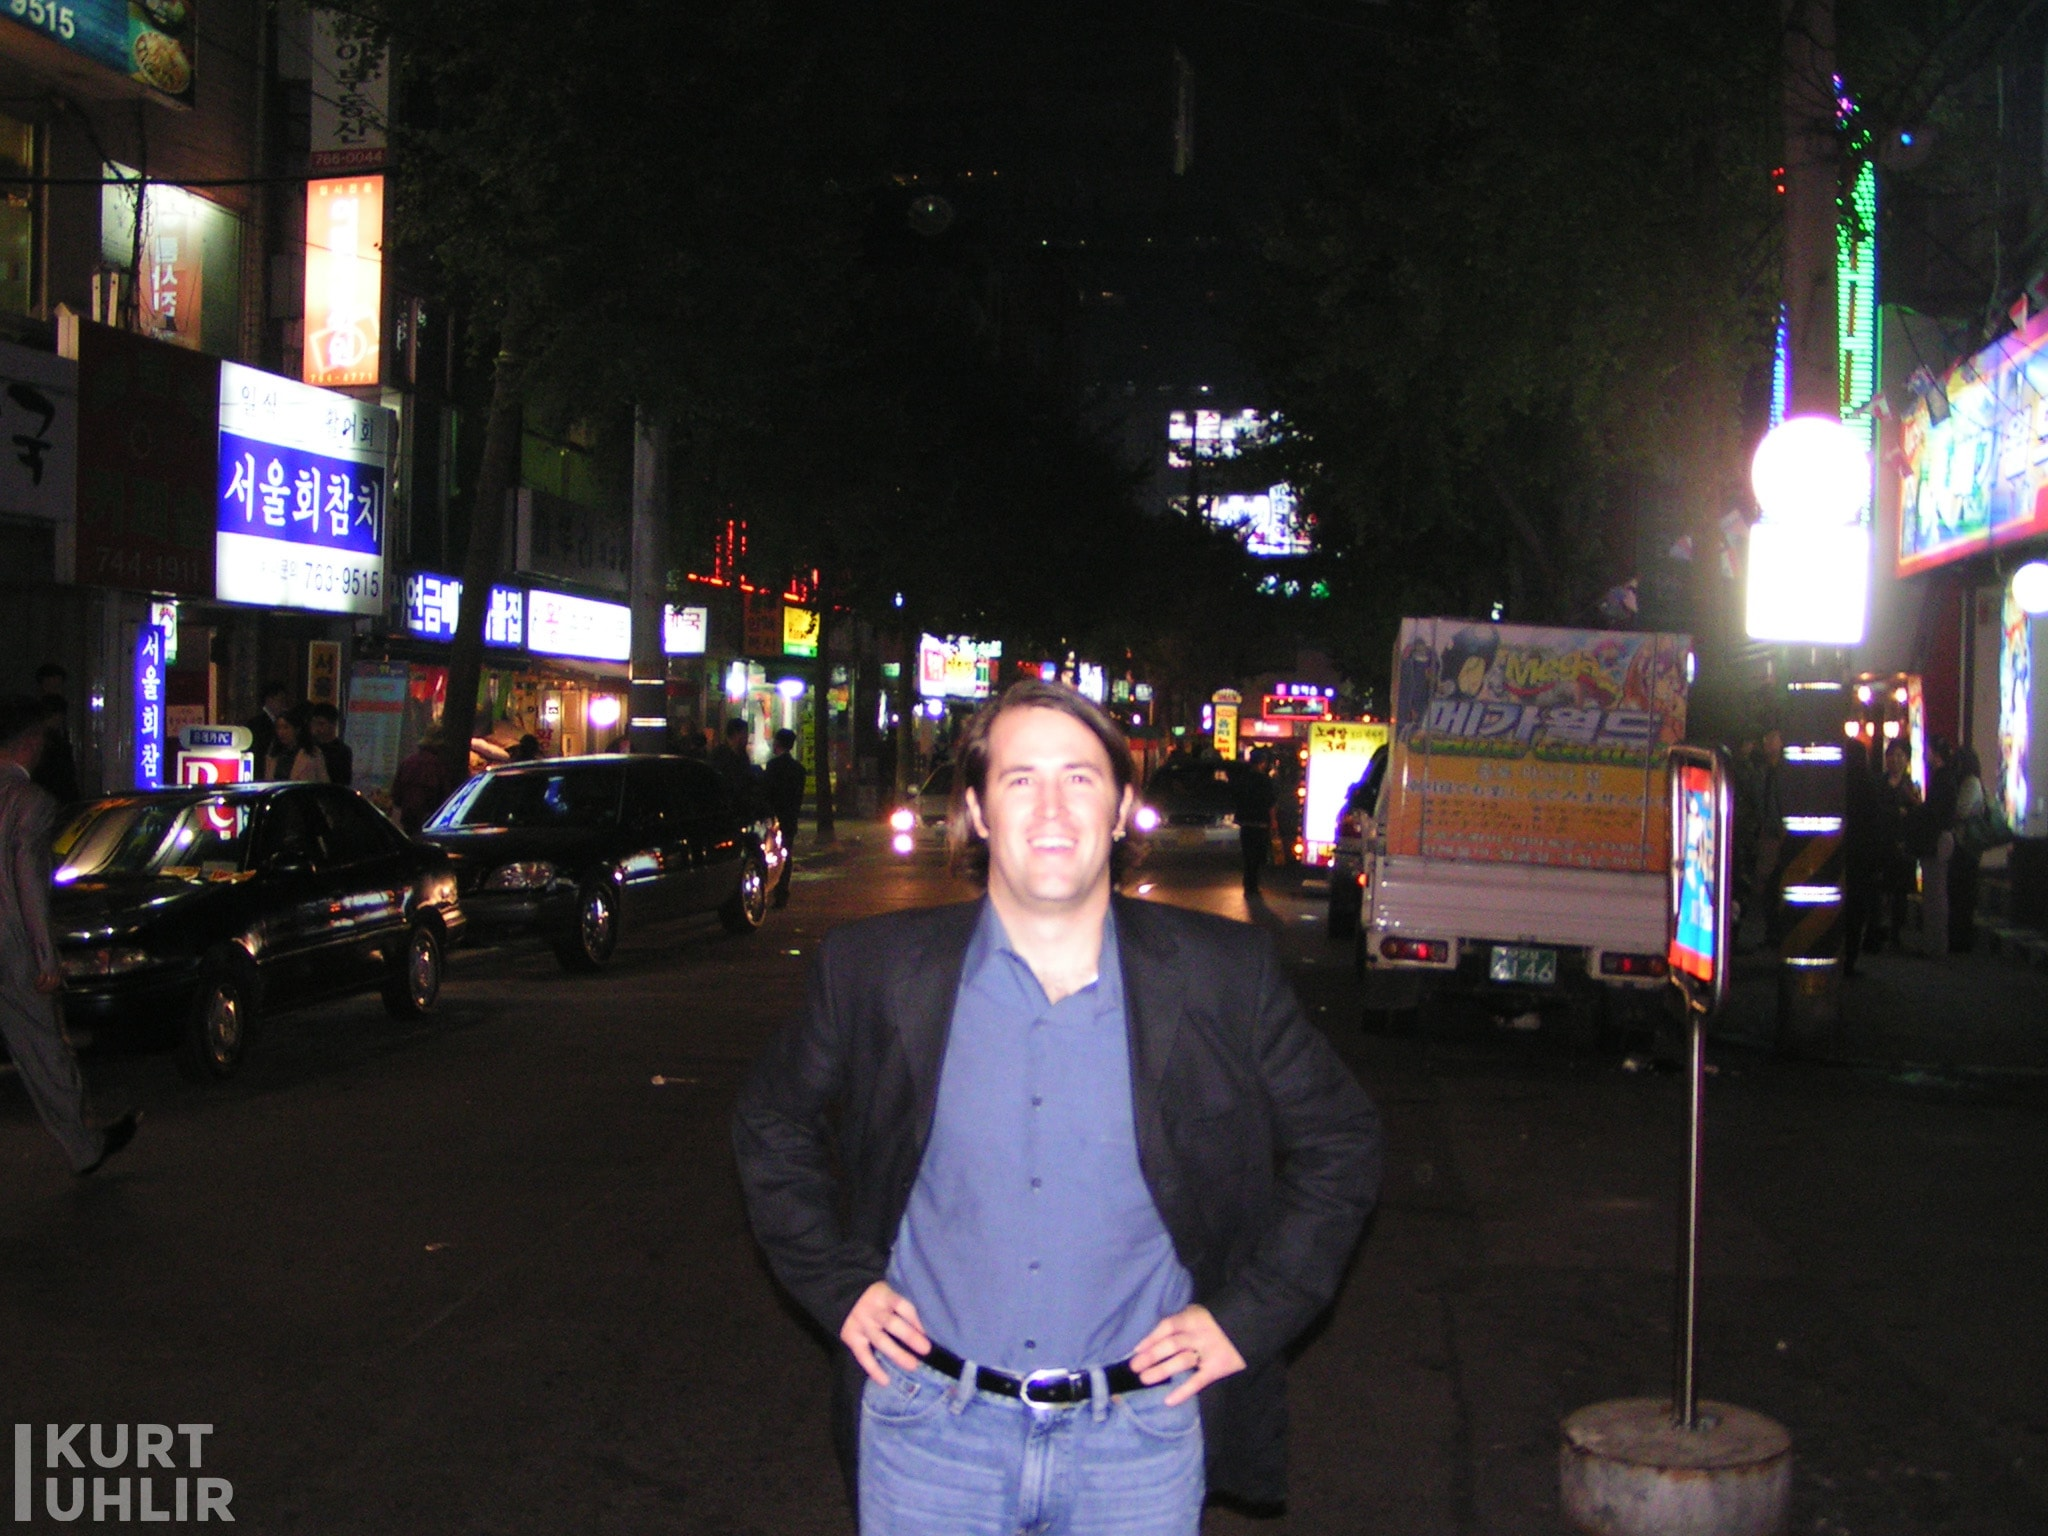 In July 2005, Navteq acquired Picture Map International (PMI), a South Korean digital map company, for about $30 million. Kurt Uhlir - exploring Seoul, South Korea after work